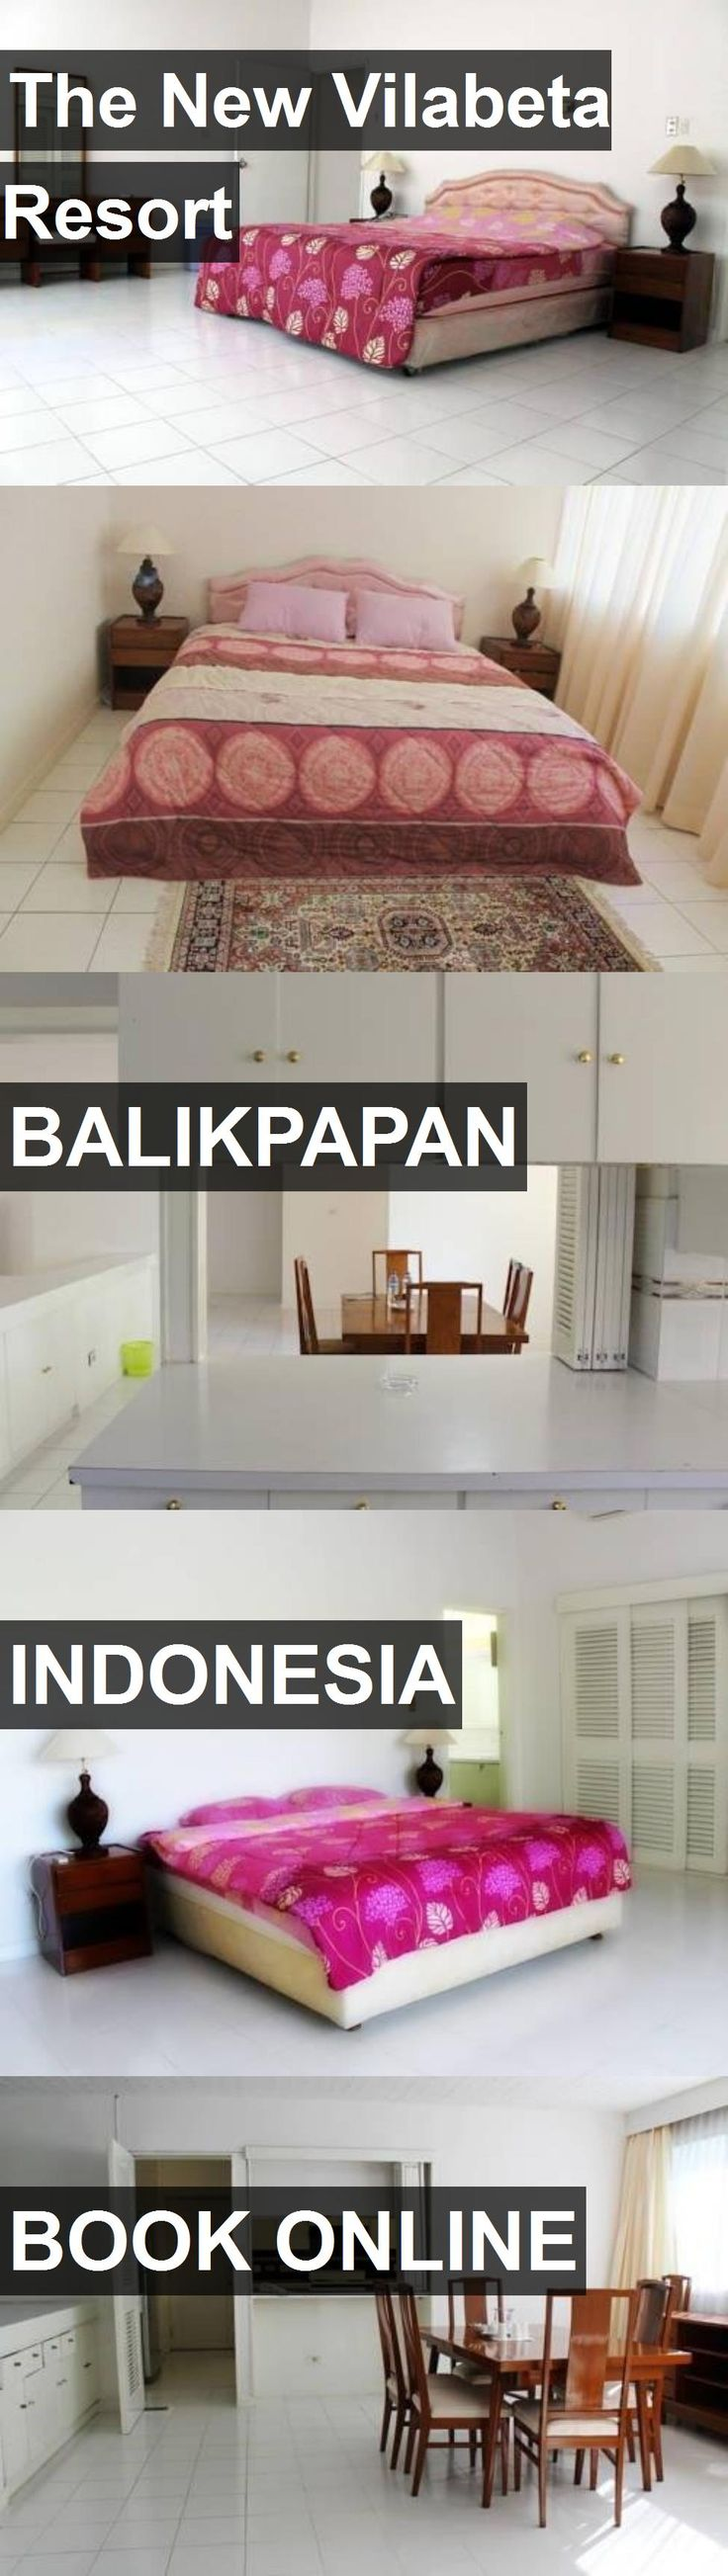 Hotel The New Vilabeta Resort in Balikpapan, Indonesia. For more information, photos, reviews and best prices please follow the link. #Indonesia #Balikpapan #travel #vacation #hotel